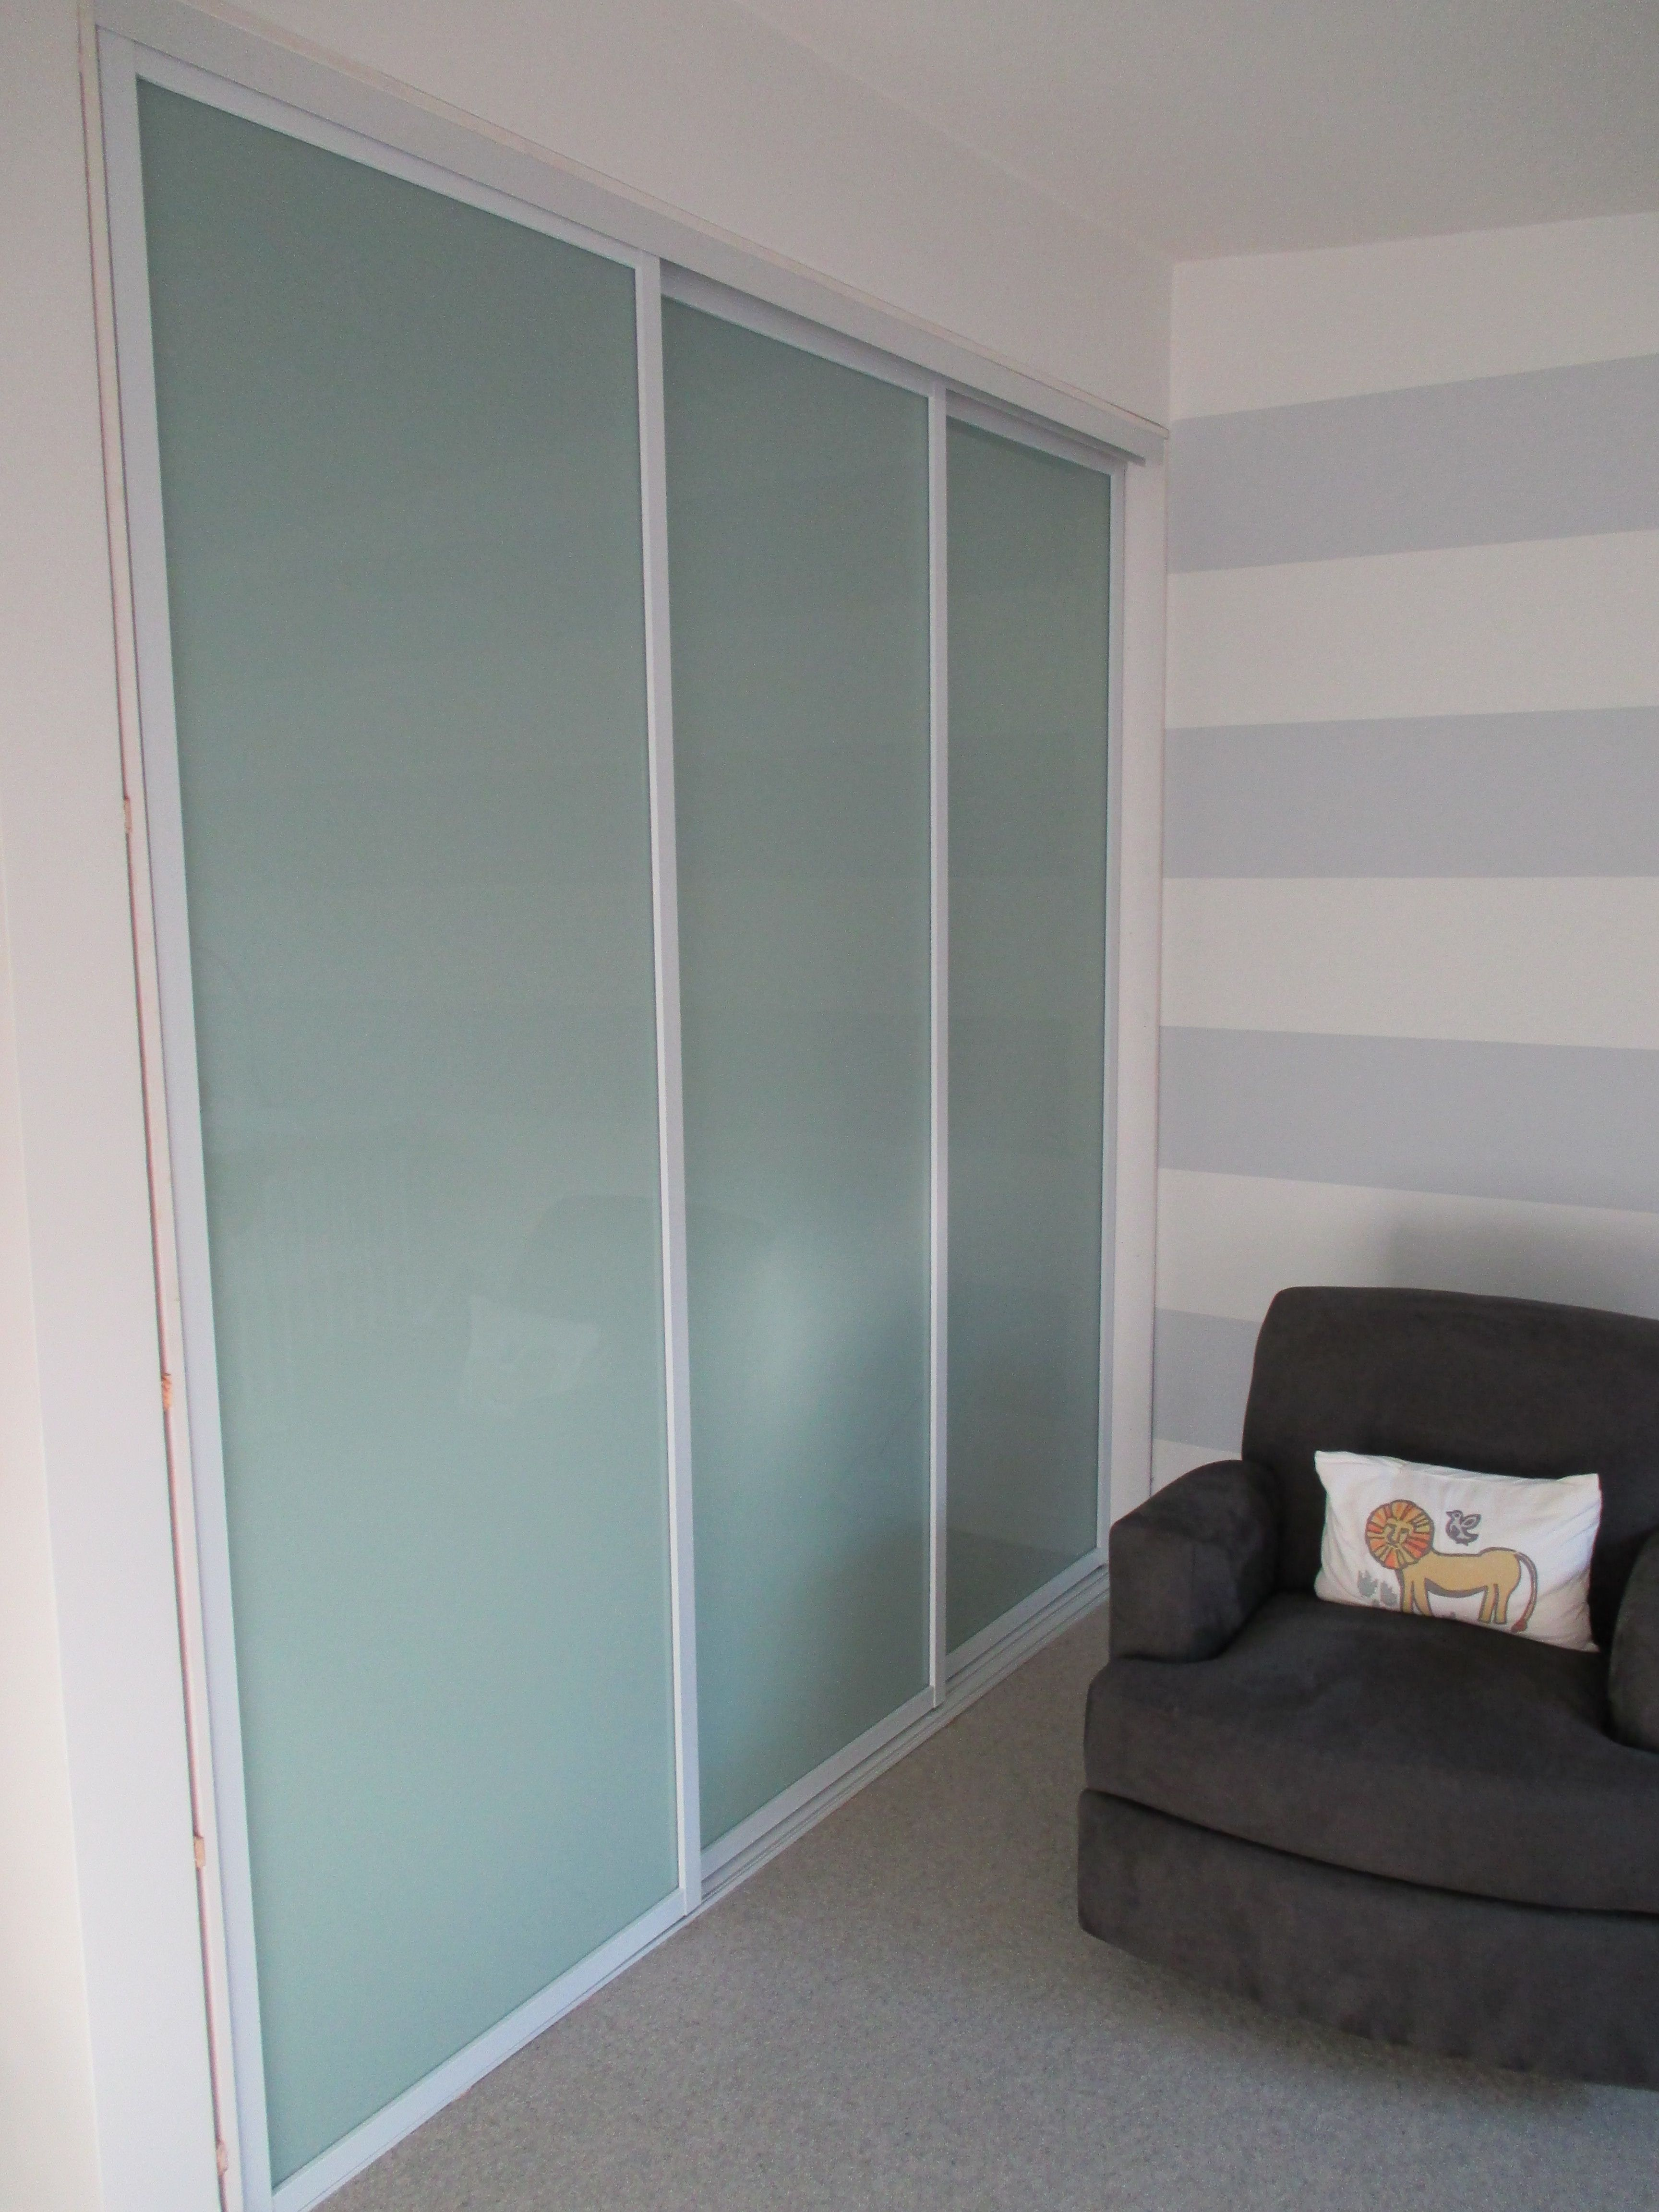 3 Panel 3 Track Modern Bypass Closet Door Check Out This Recent